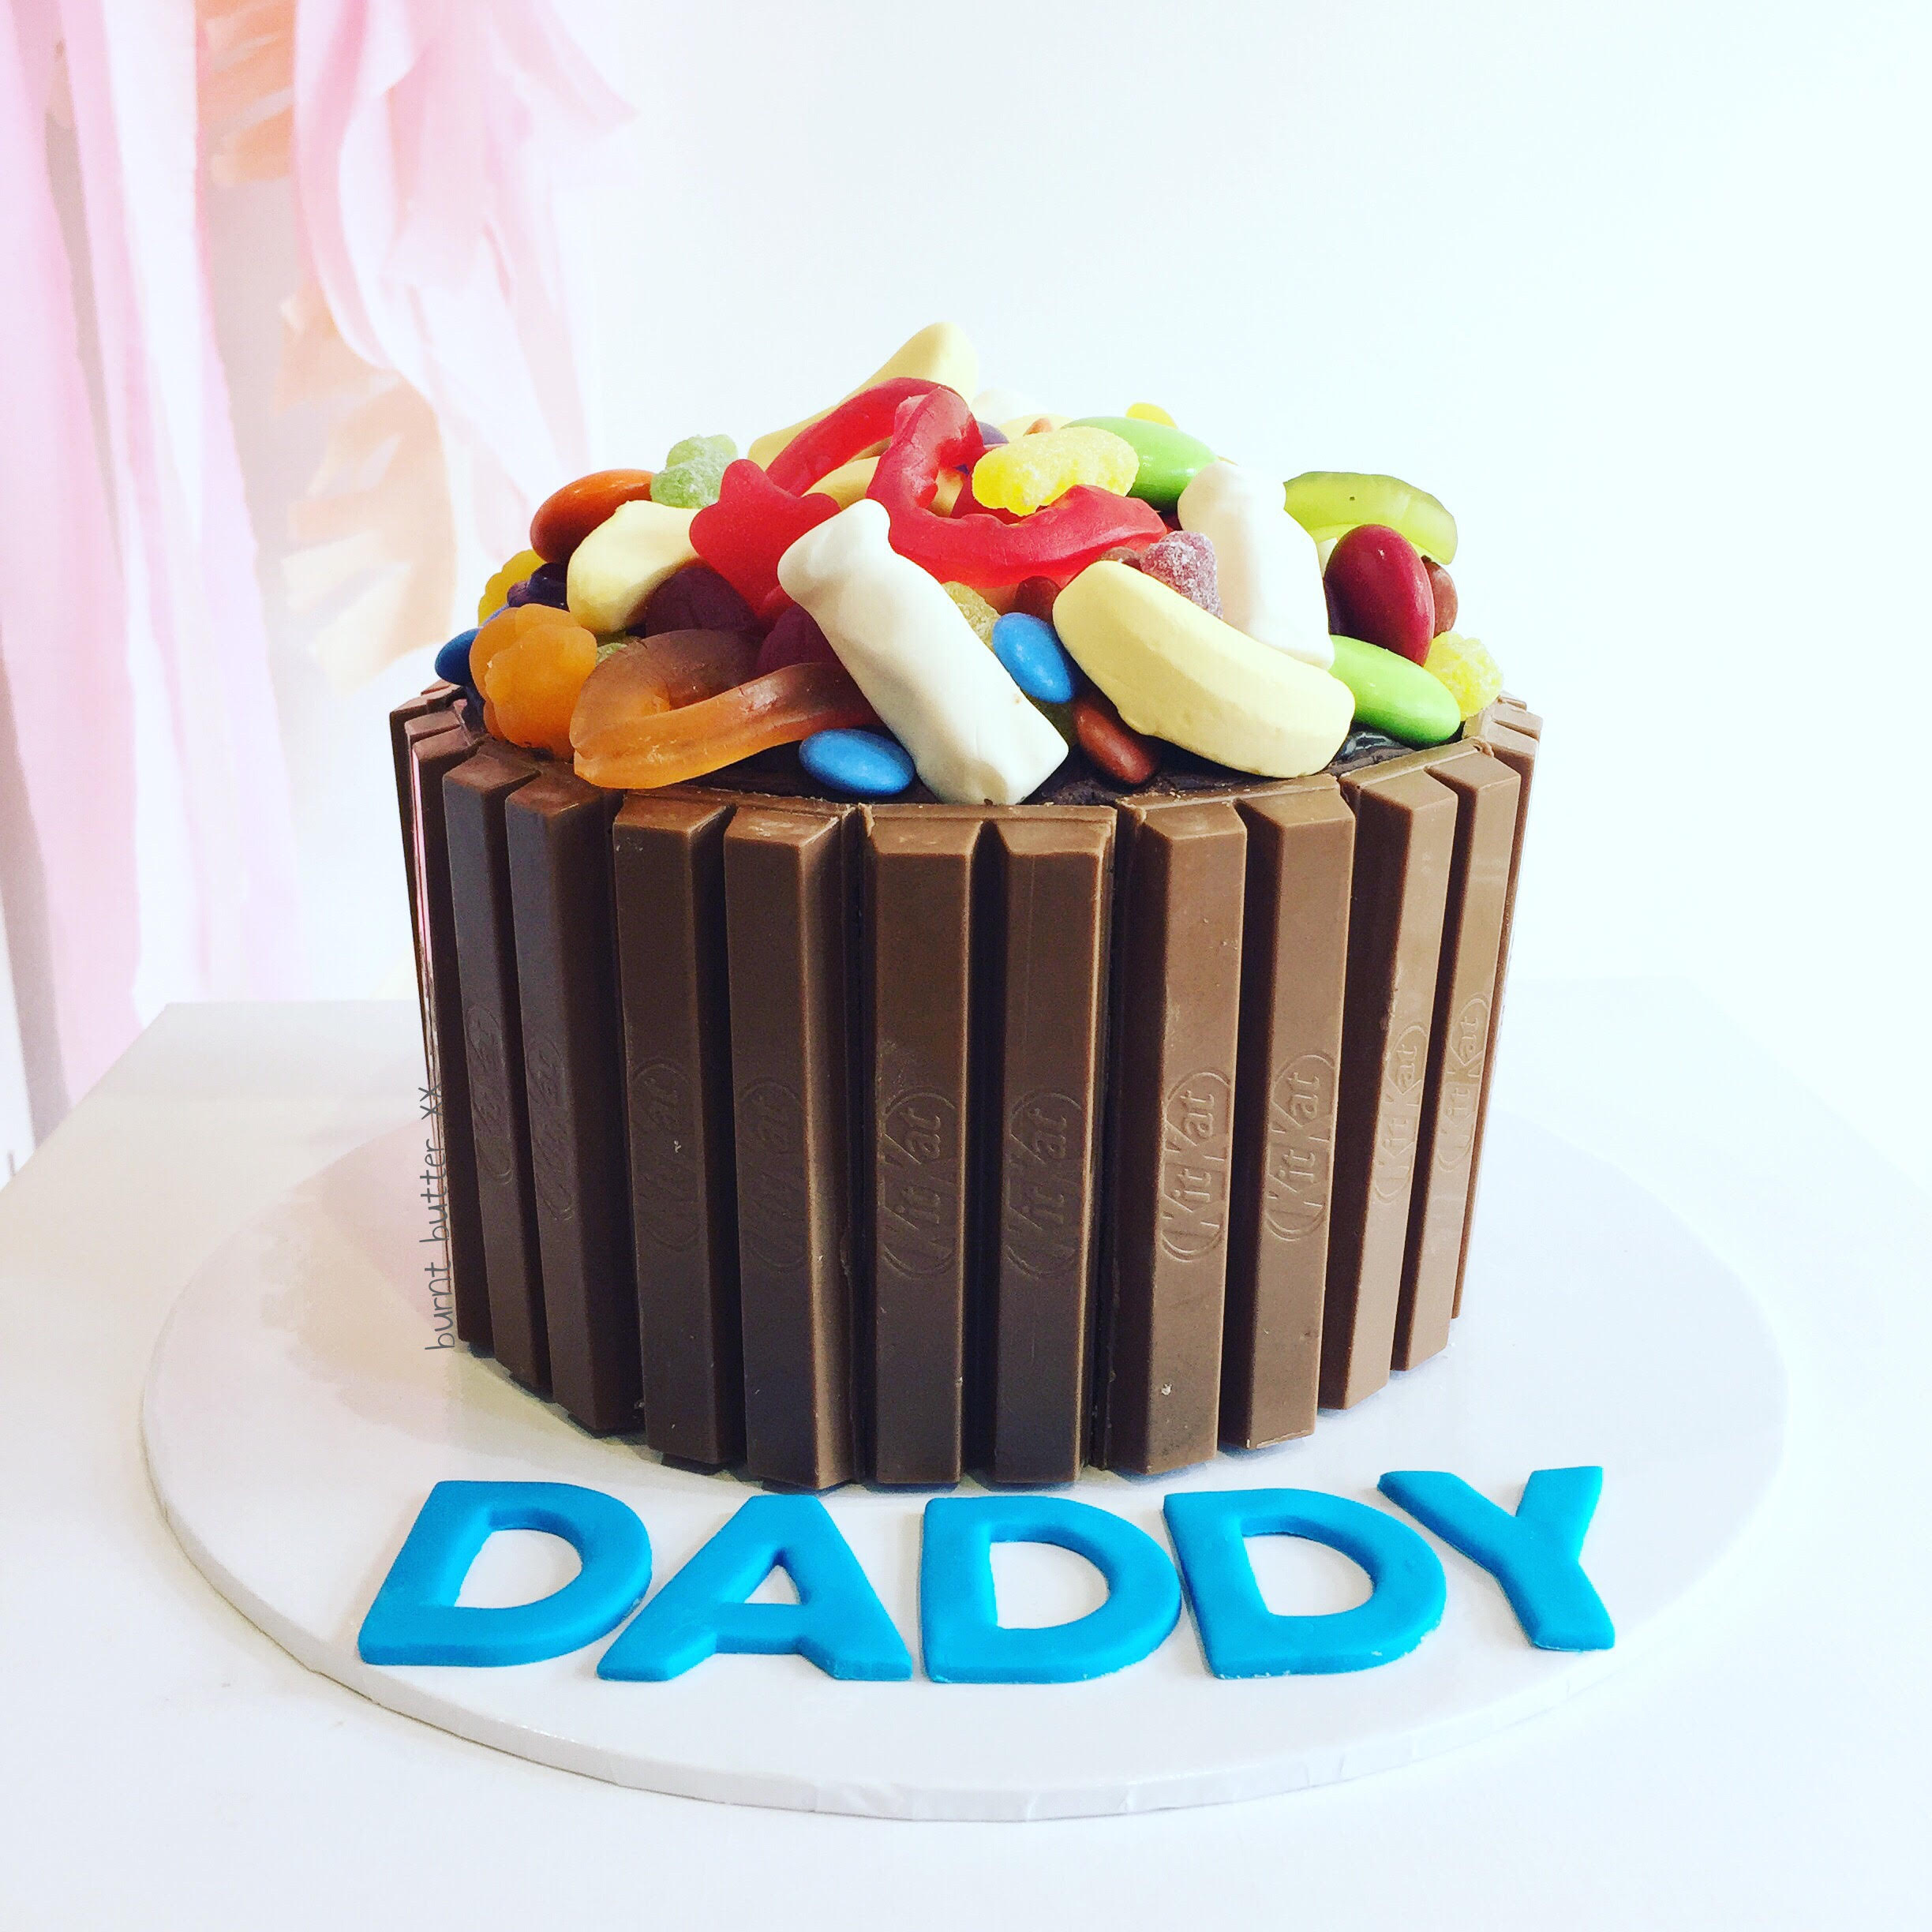 Father's Day Cakes